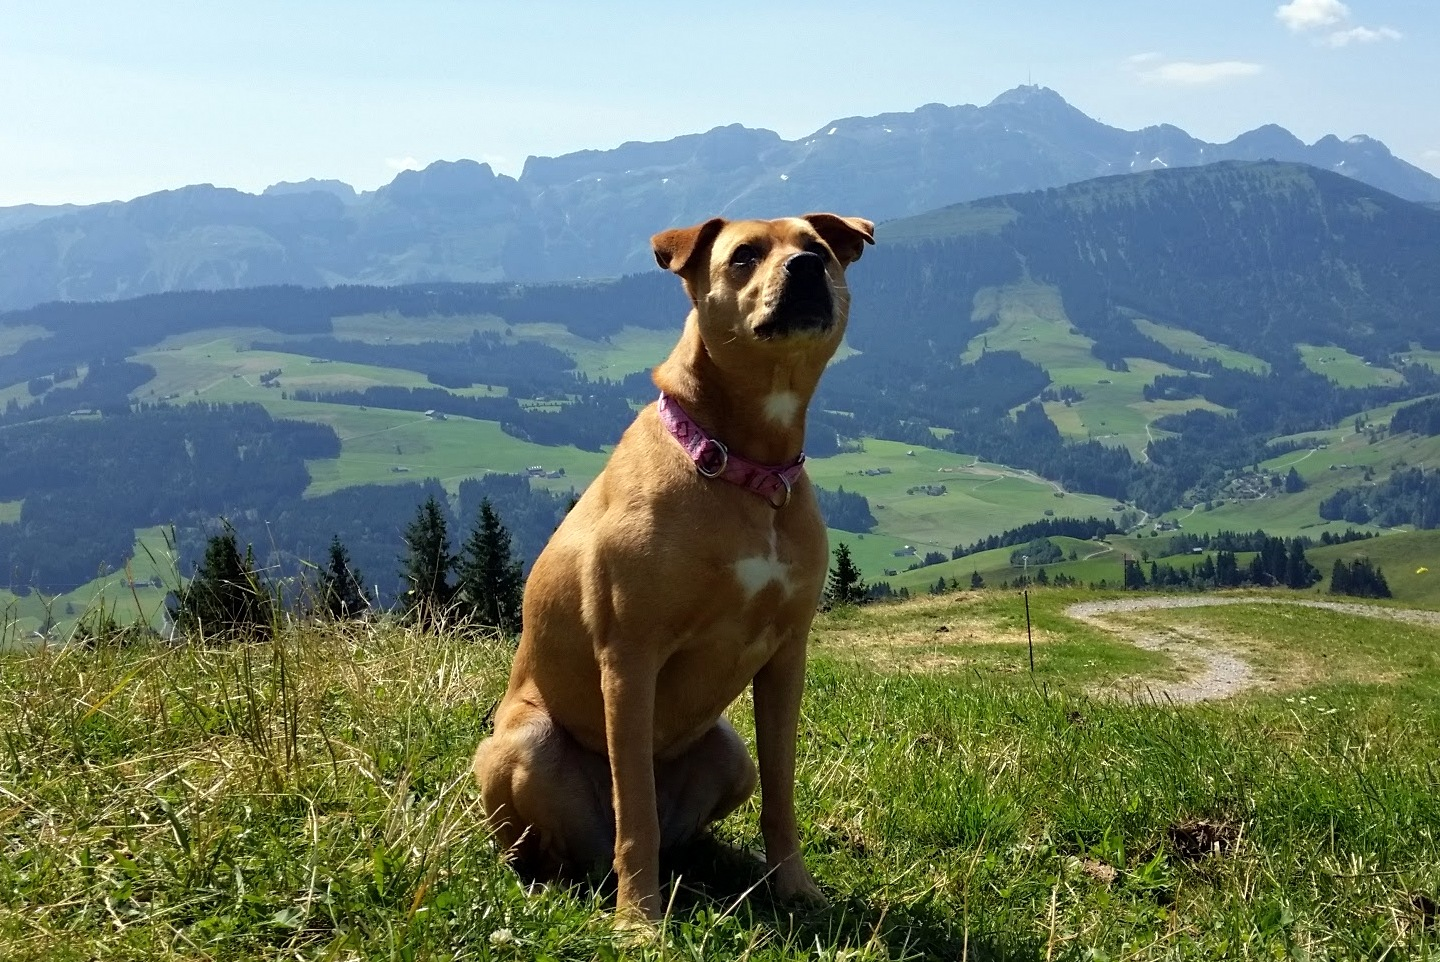 On a hike in Appenzell.This is not our neighborhood park! ;-)